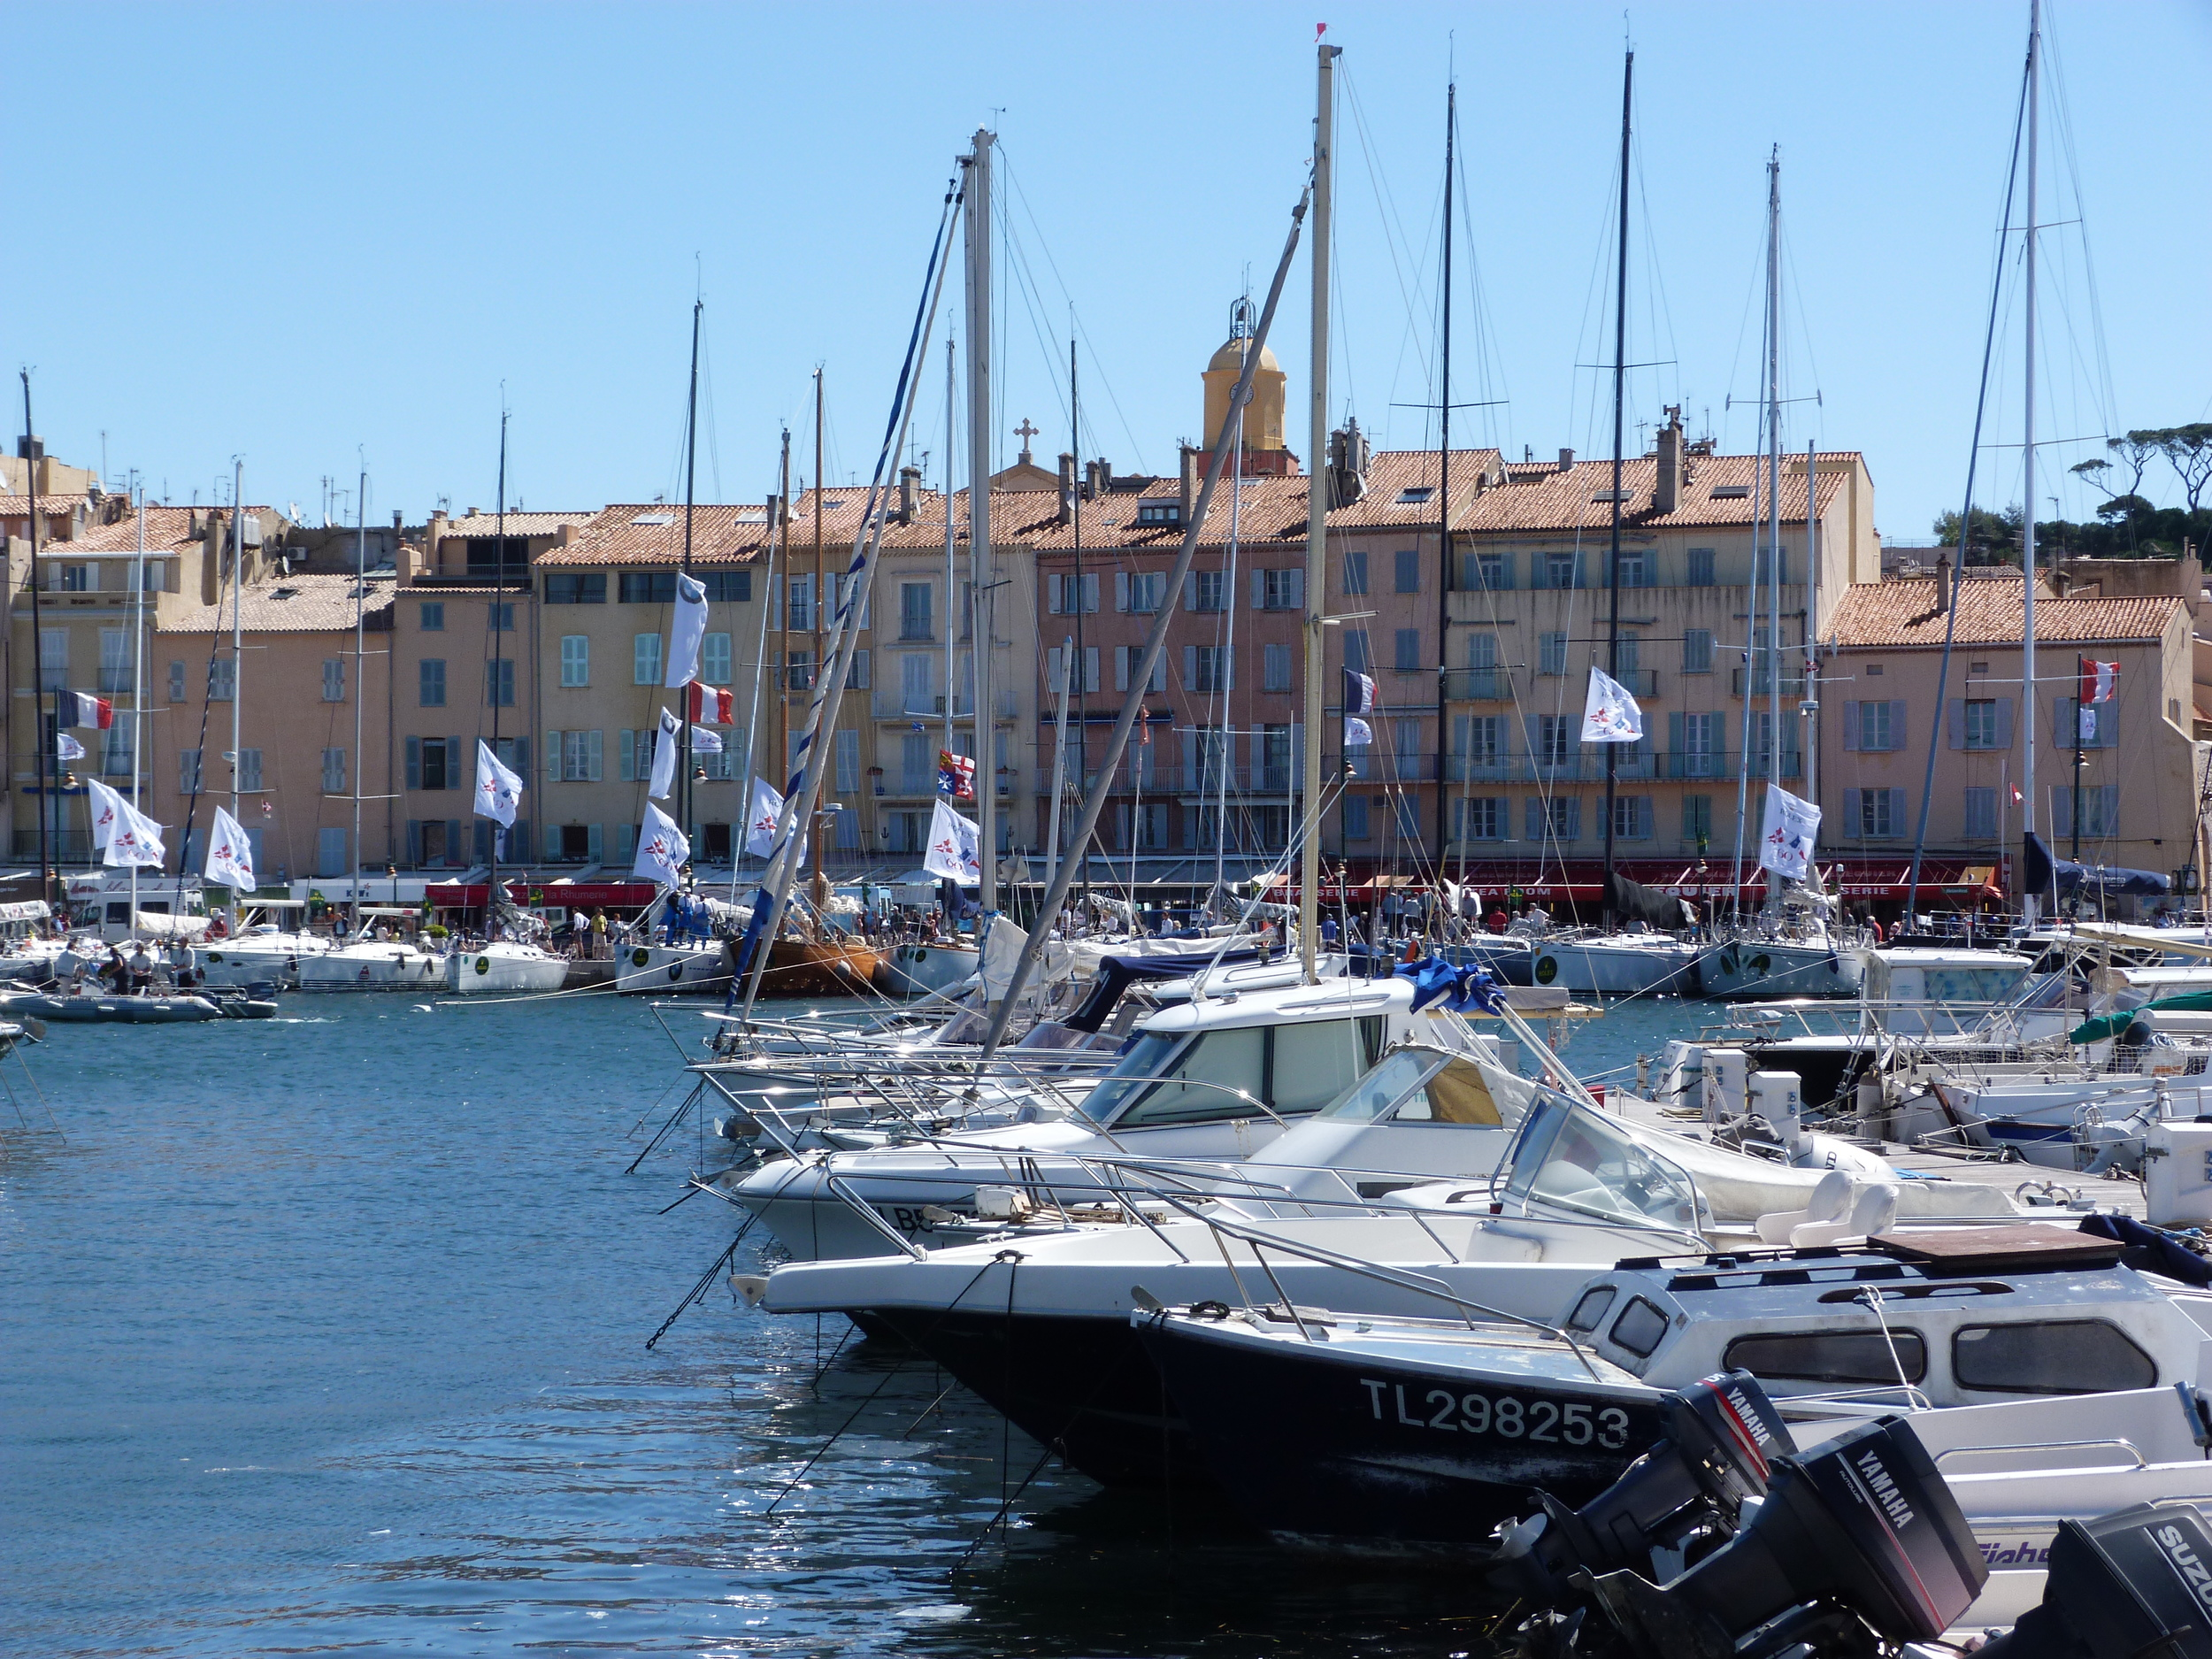 St Tropez (30 - 45 mins away by car and/or regular ferry)